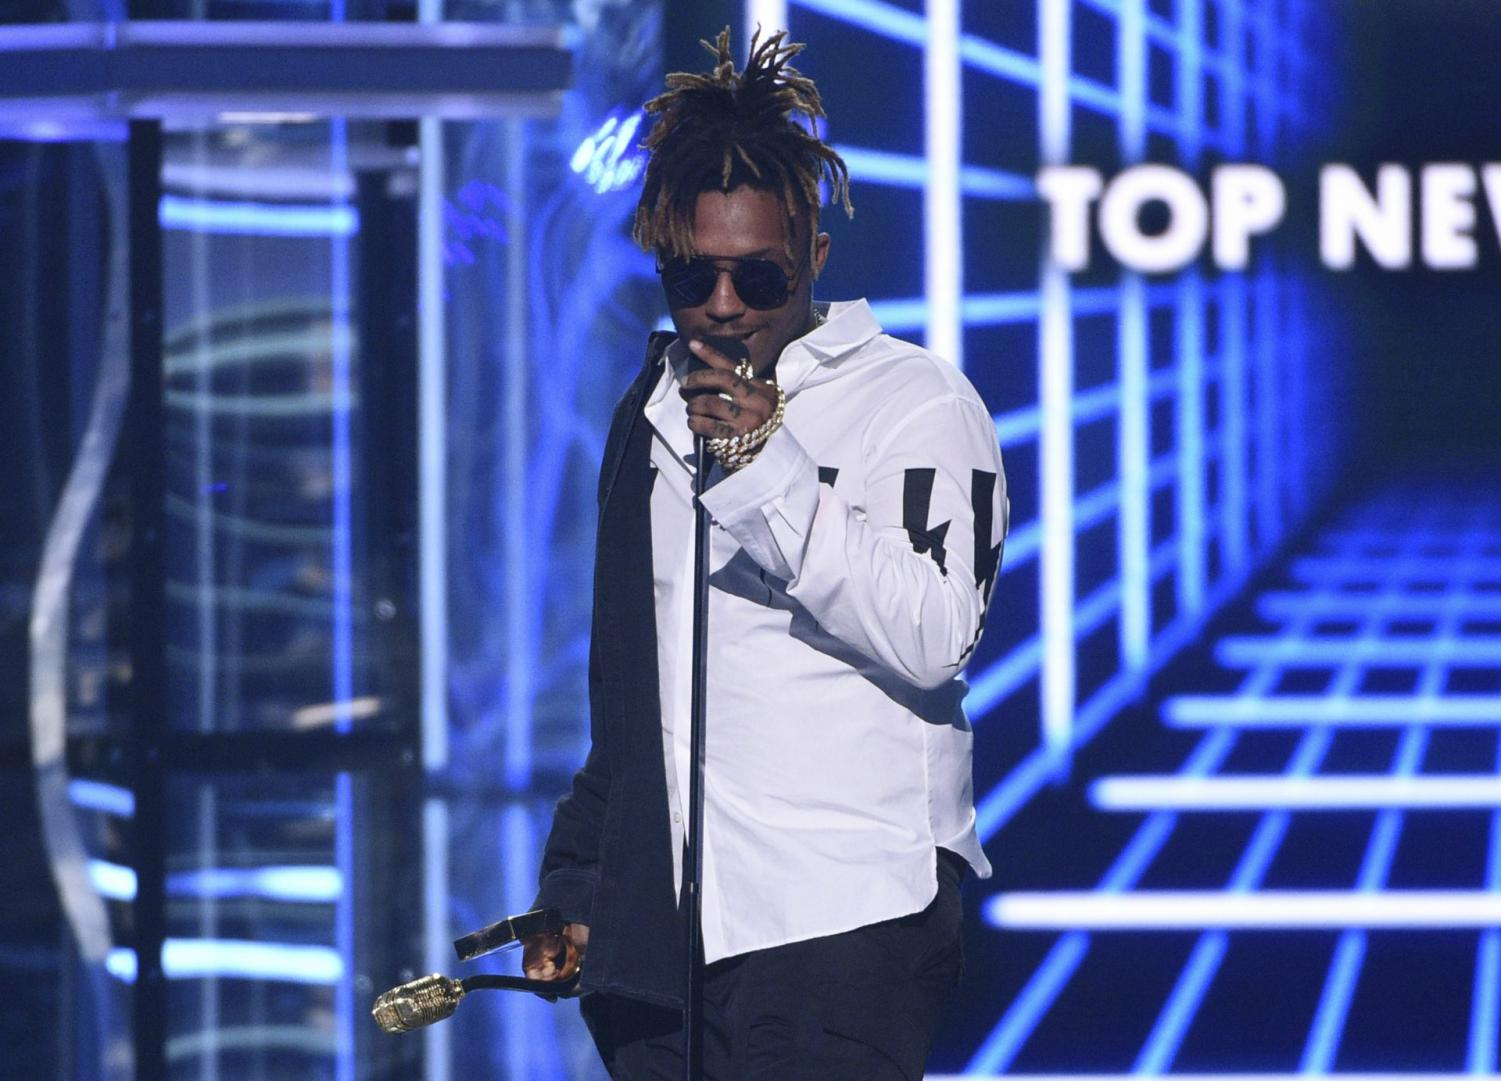 In this May 1, 2019 file photo, Juice WRLD accepts the award for top new artist at the Billboard Music Awards at the MGM Grand Garden Arena in Las Vegas. The Chicago-area rapper, whose real name is Jarad A. Higgins, was pronounced dead Sunday, Dec. 8 after a